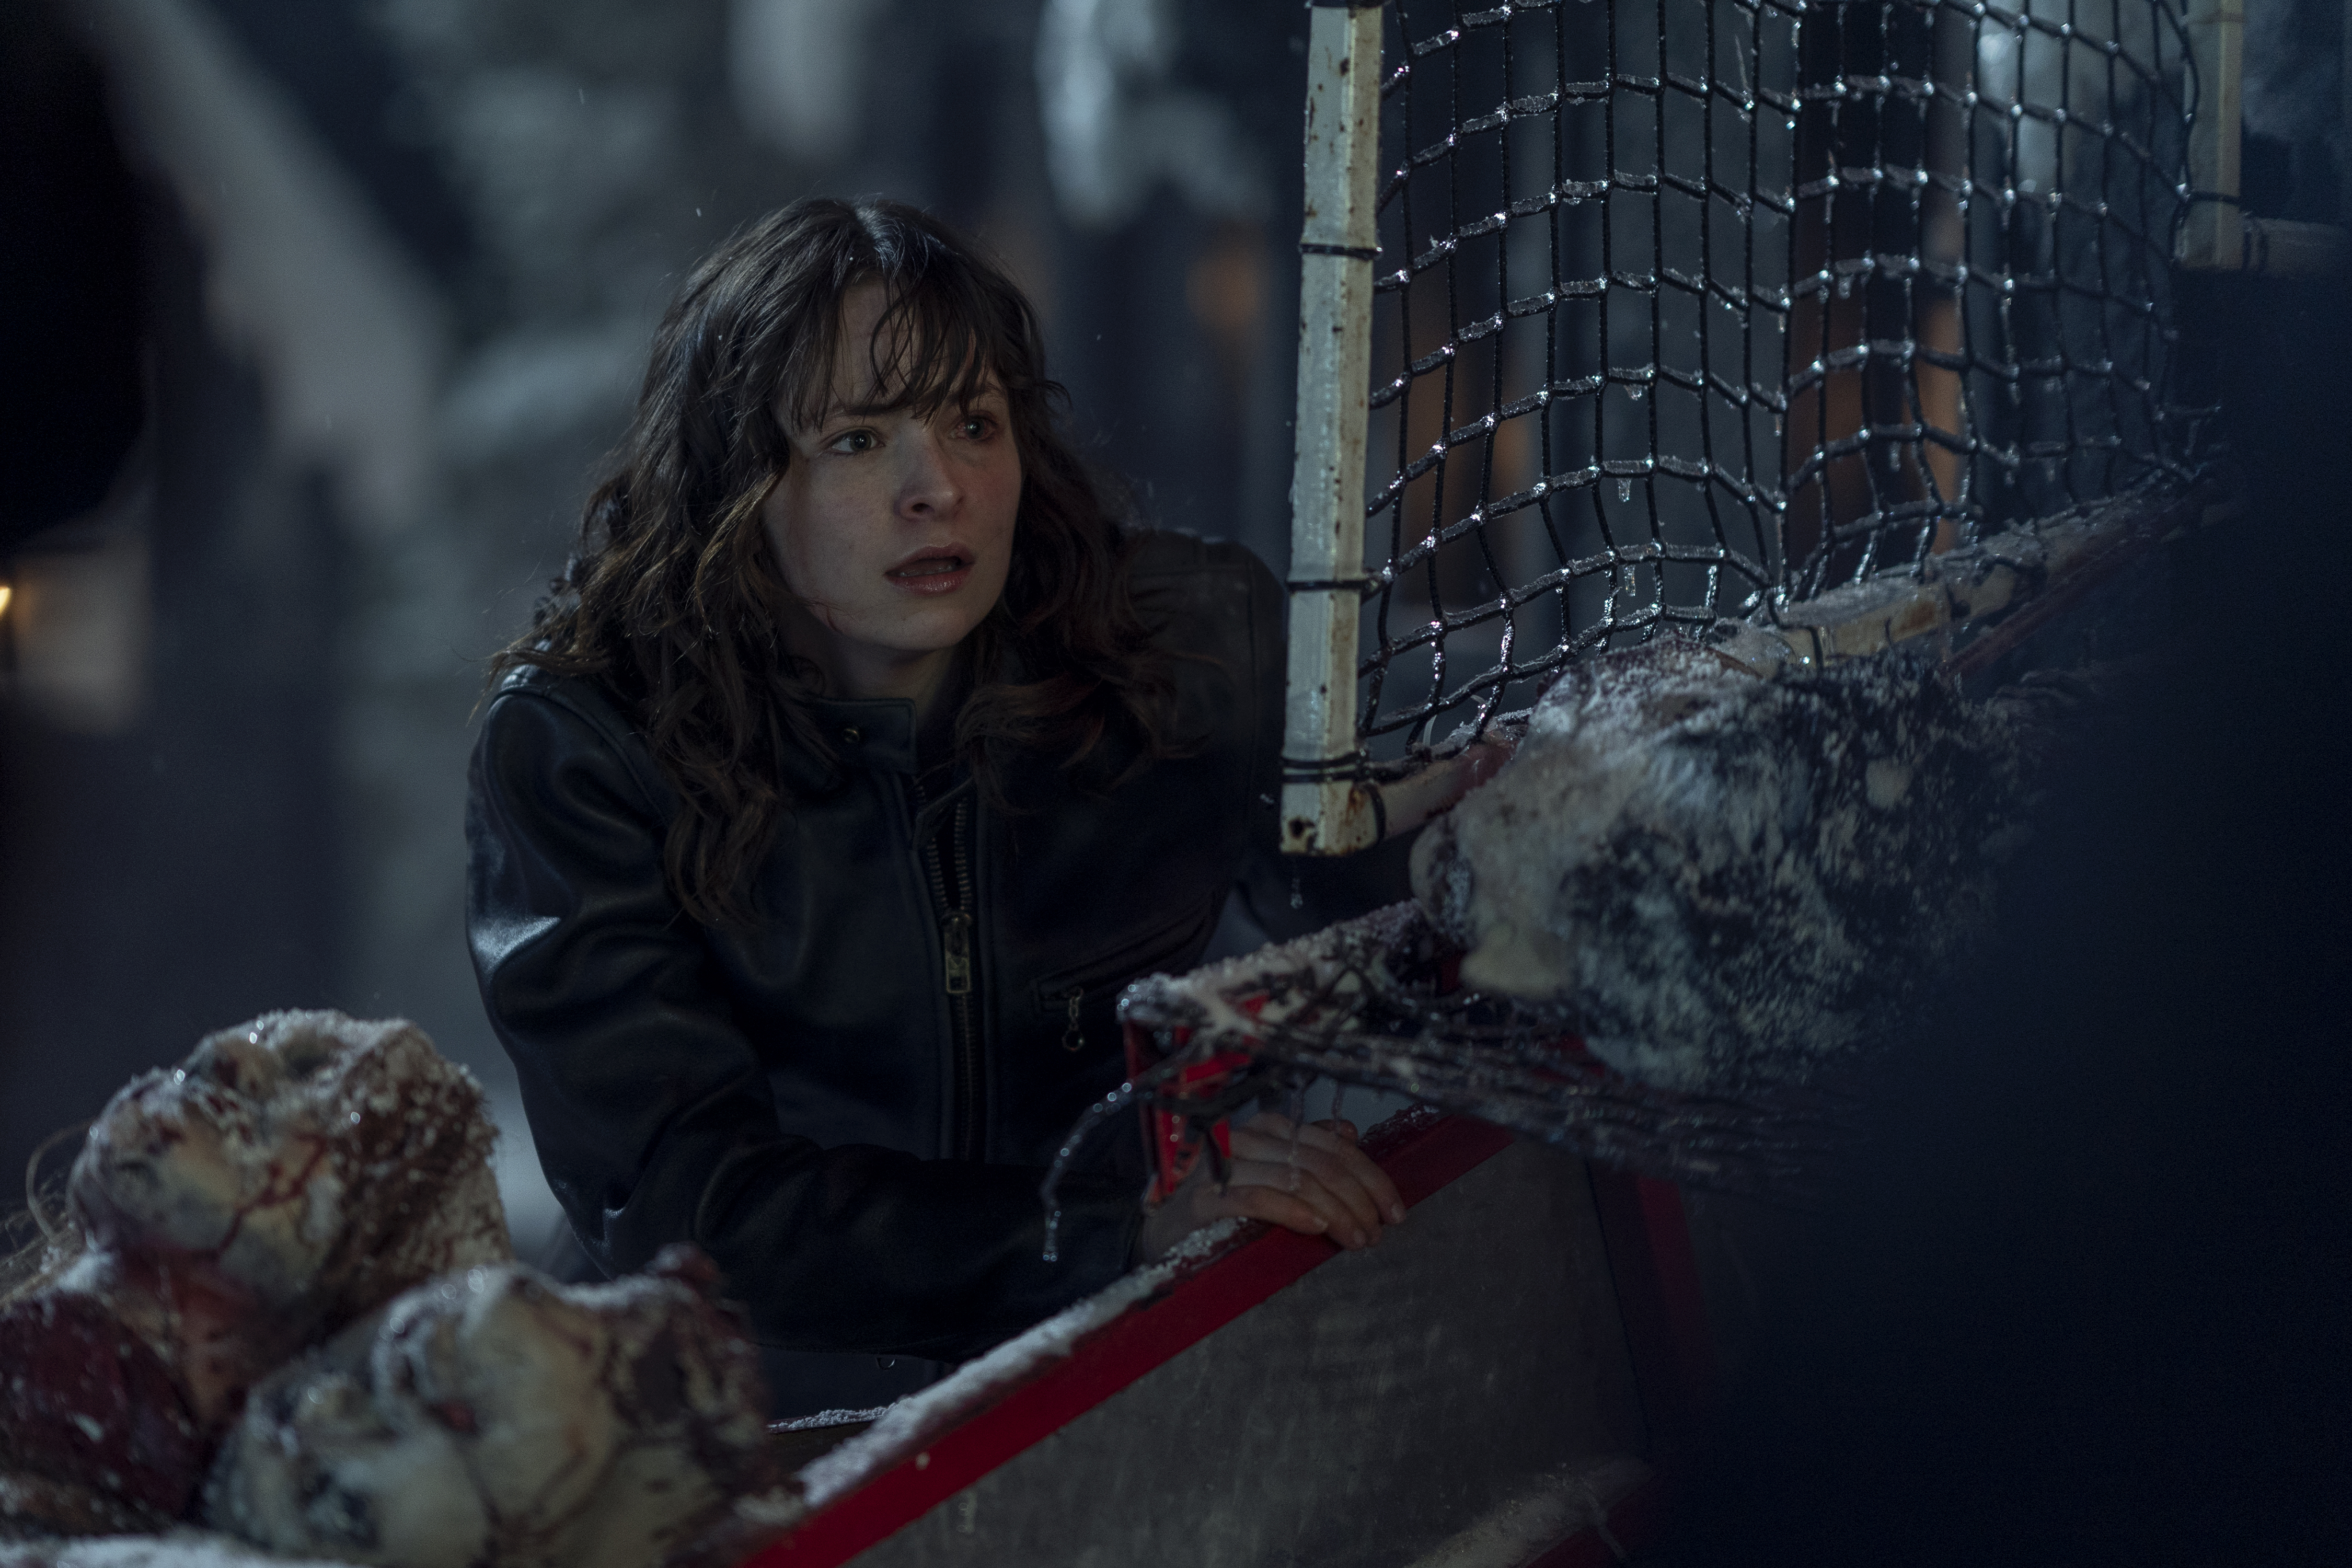 Ashleigh Cummings in NOS4A2 (2019)